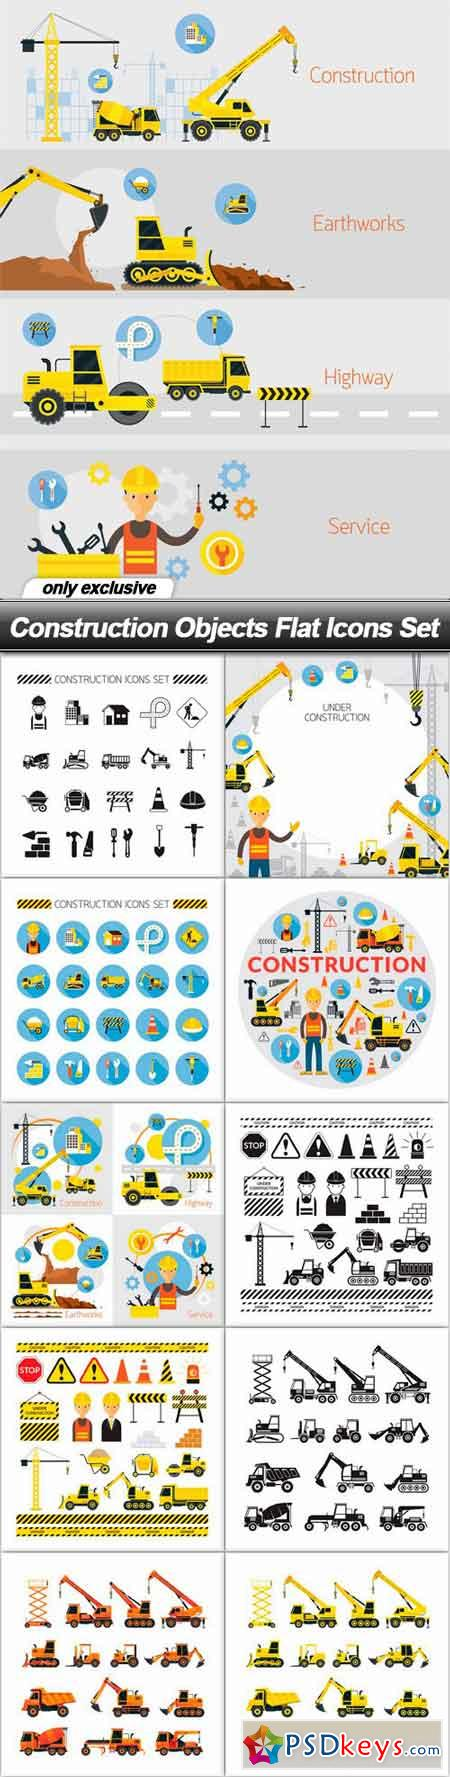 Construction Objects Flat Icons Set - 11 EPS